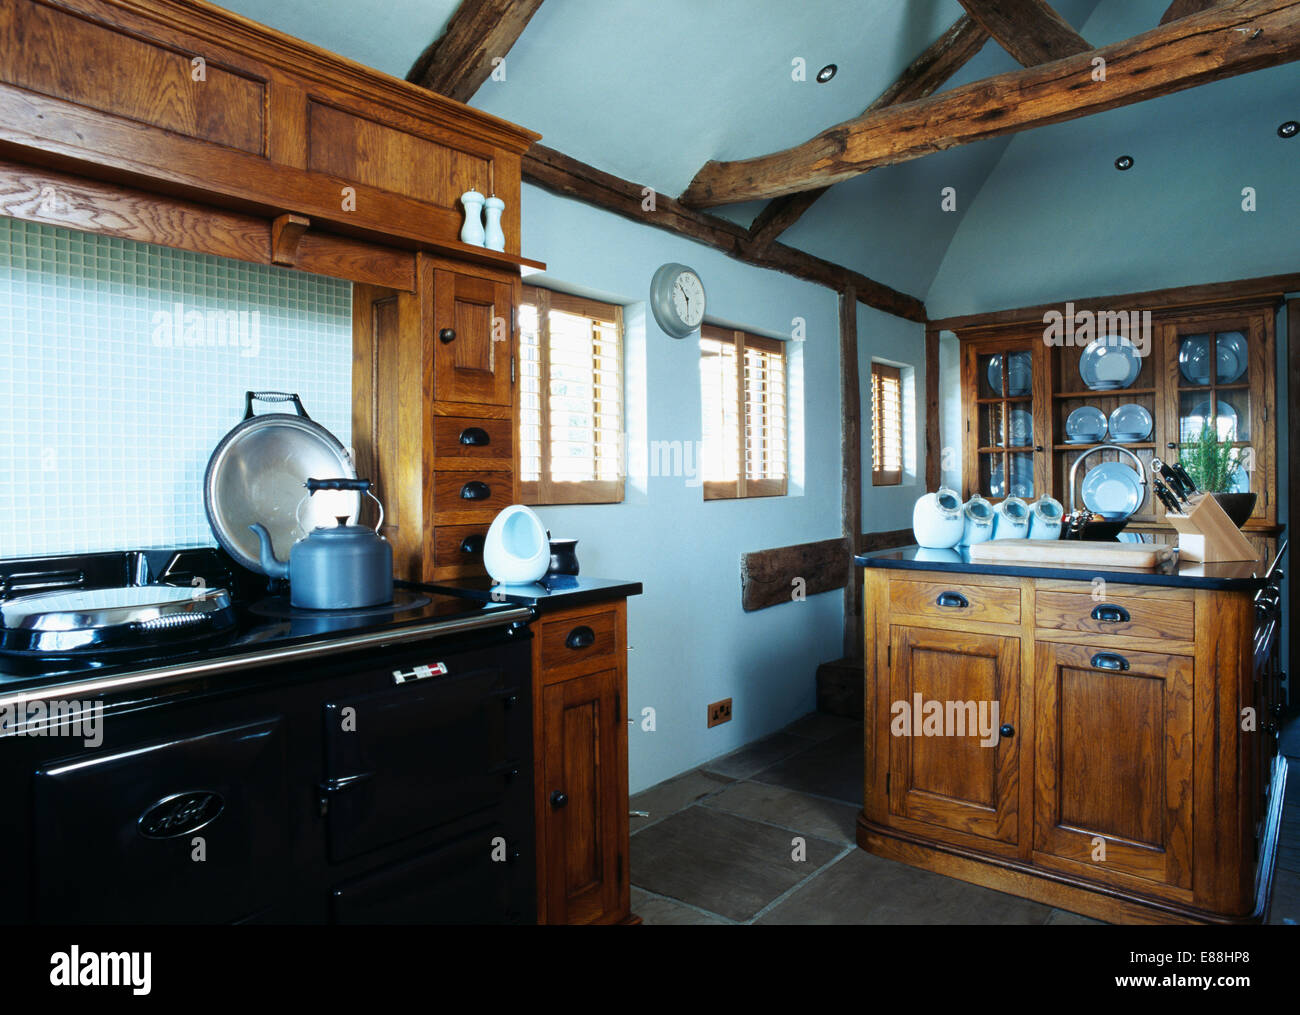 Black Country Kitchen blue kettle on black aga in pastel blue country kitchen with